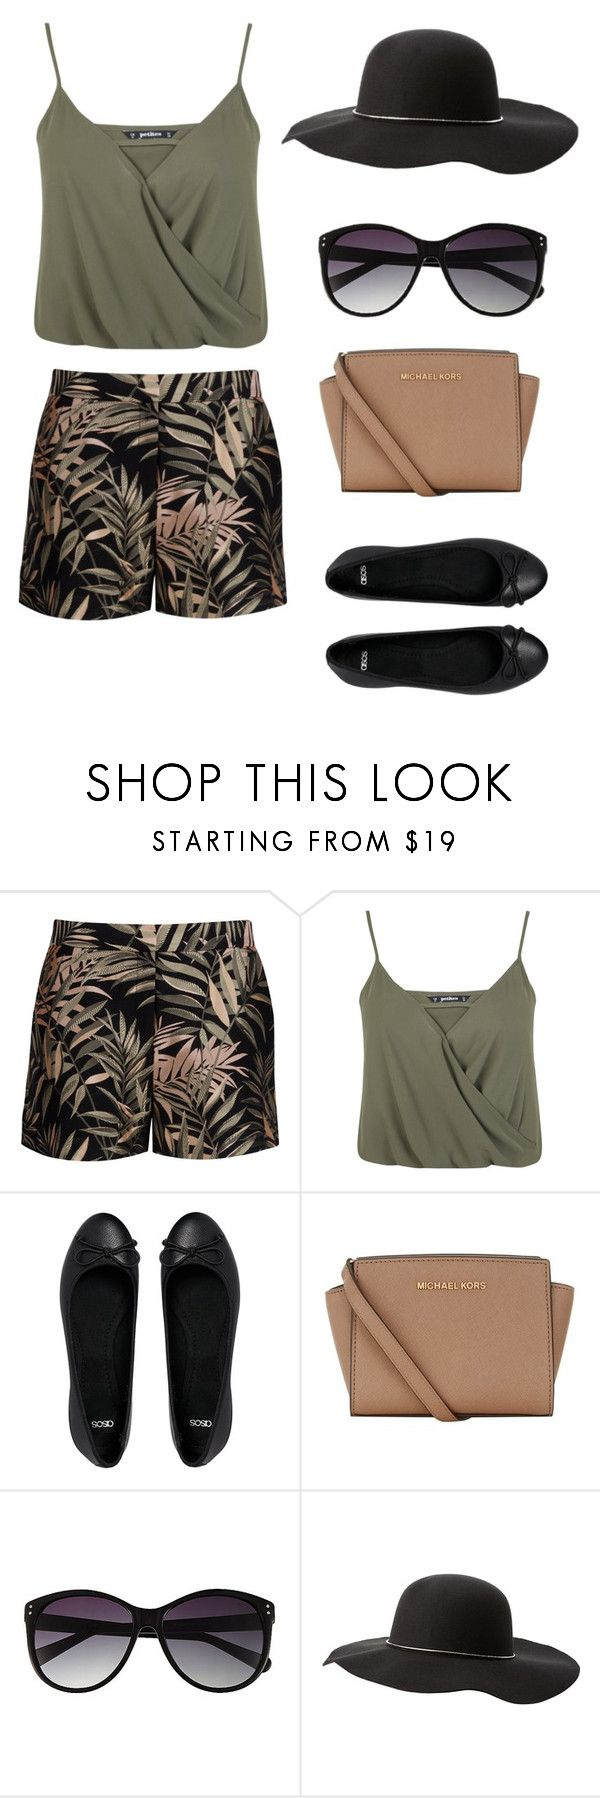 """Day Out At The Zoo"" by emymoo ❤ liked on Polyvore featuring Ted Baker, Miss Selfridge, ASOS, MICHAEL Michael Kors, Vince Camuto and Charlotte Russe"